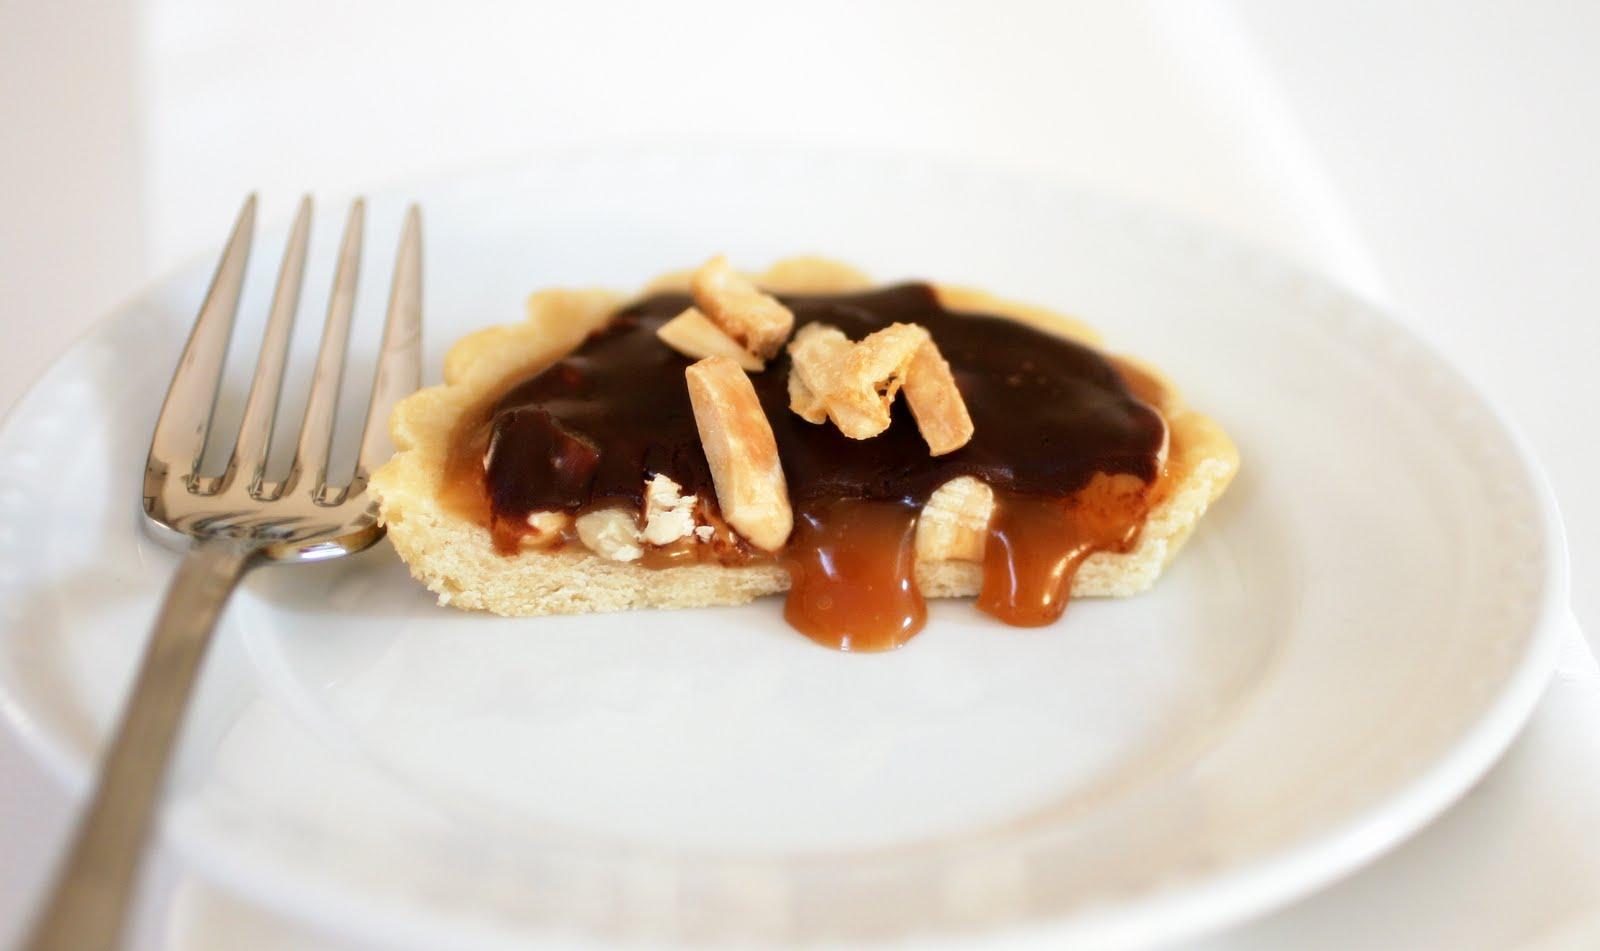 Tish Boyle Sweet Dreams: Chocolate Caramel Almond Tartlets